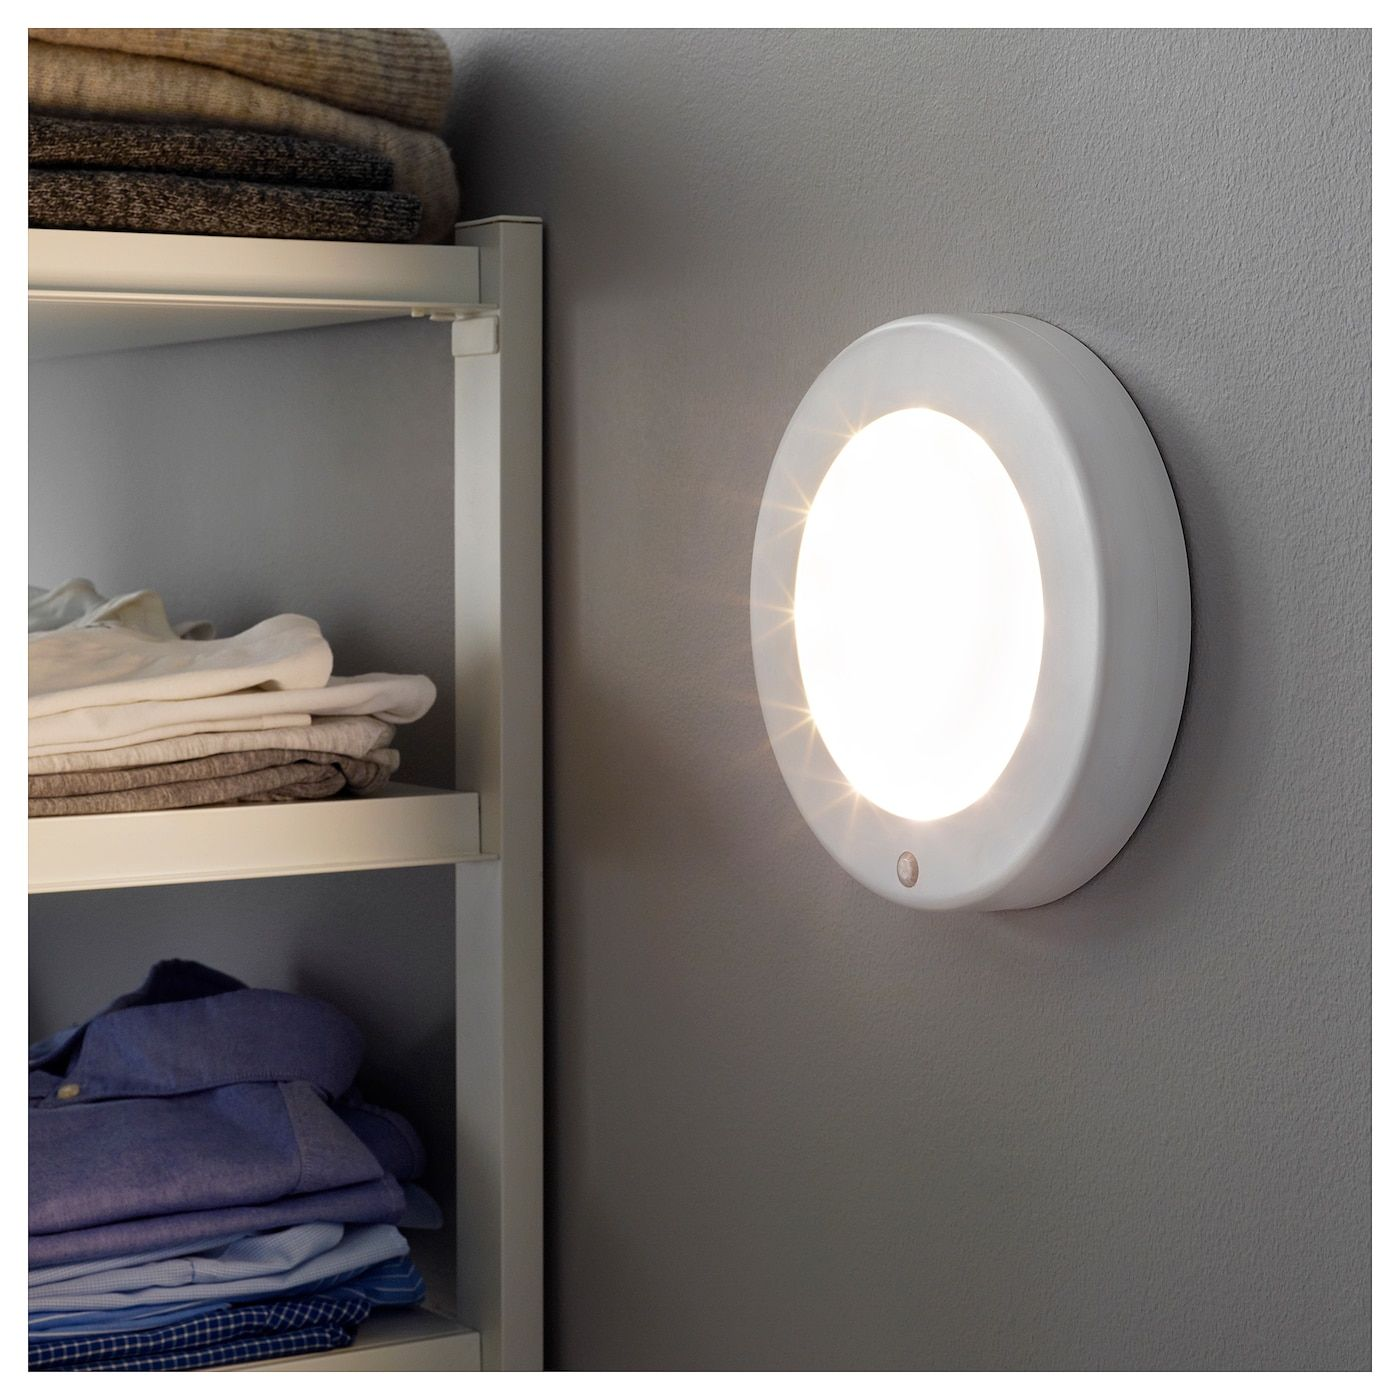 Ikea Stotta Led Ceiling Wall Lamp Battery Operated White Wall